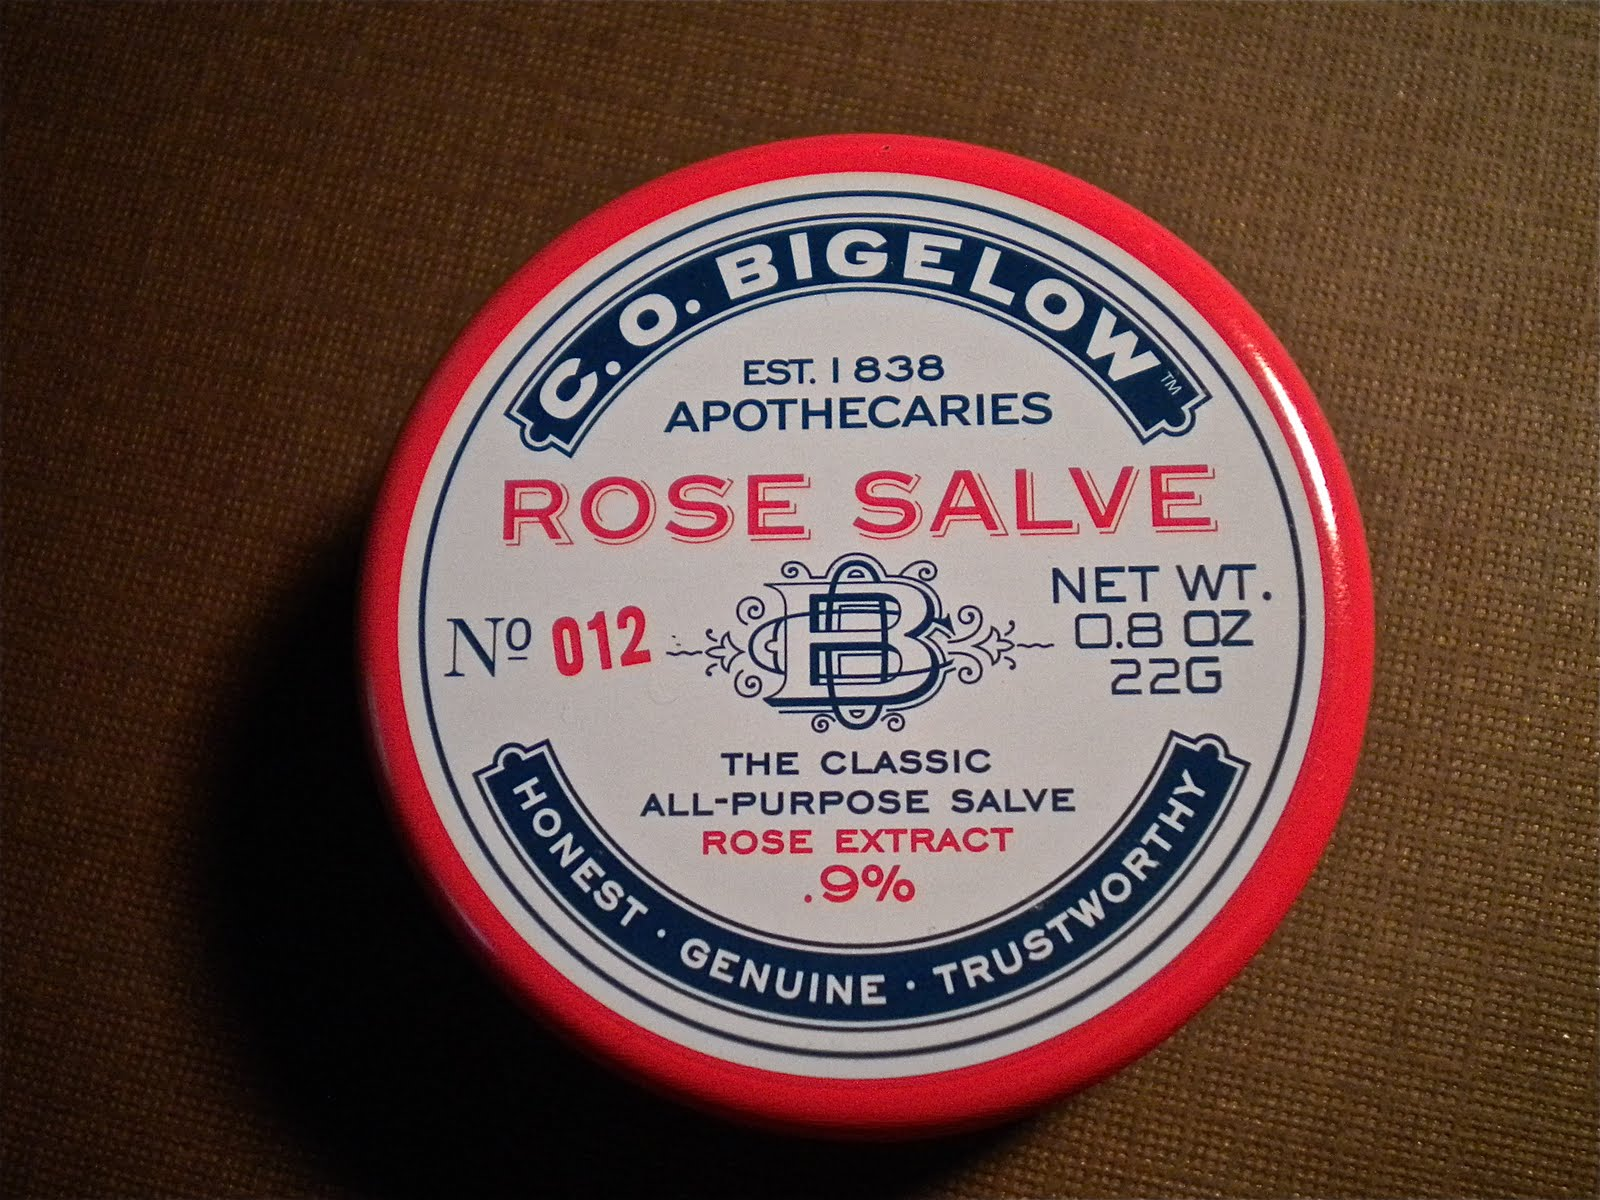 Find great deals on eBay for co bigelow rose salve. Shop with deviatemonth.ml: Fashion, Home & Garden, Electronics, Motors, Collectibles & Arts, Toys & Hobbies.